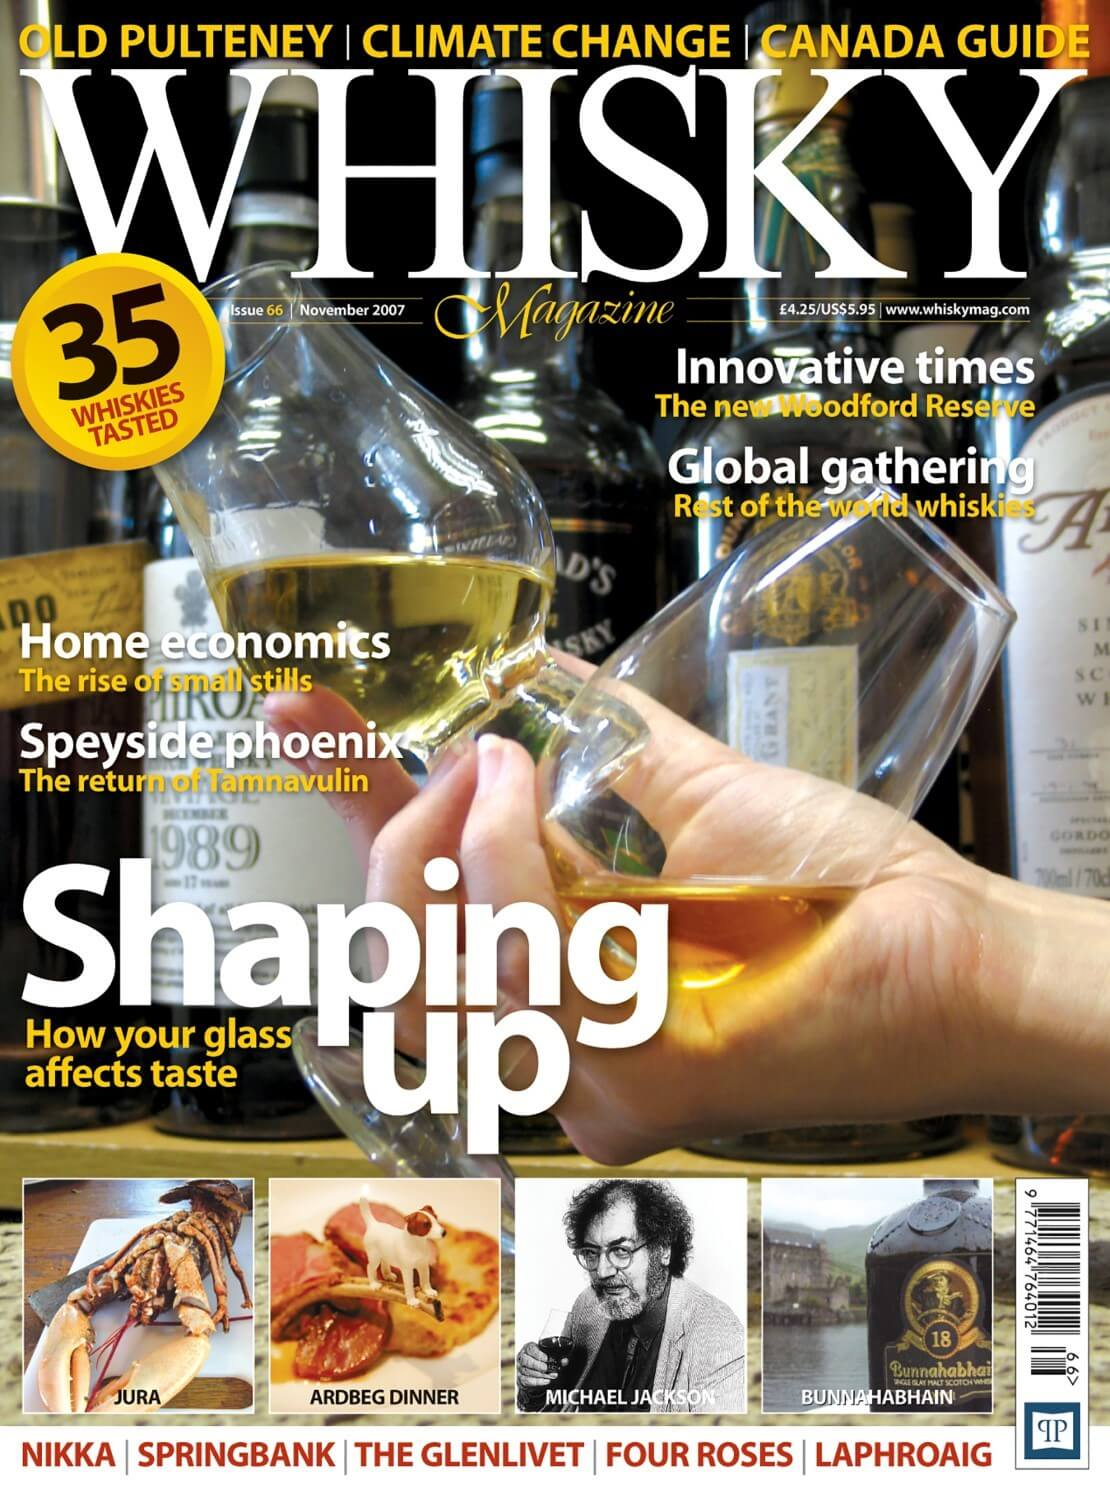 How glass affects your taste Rise of small stills Tamnavulin Woodford Reserve Canada guide